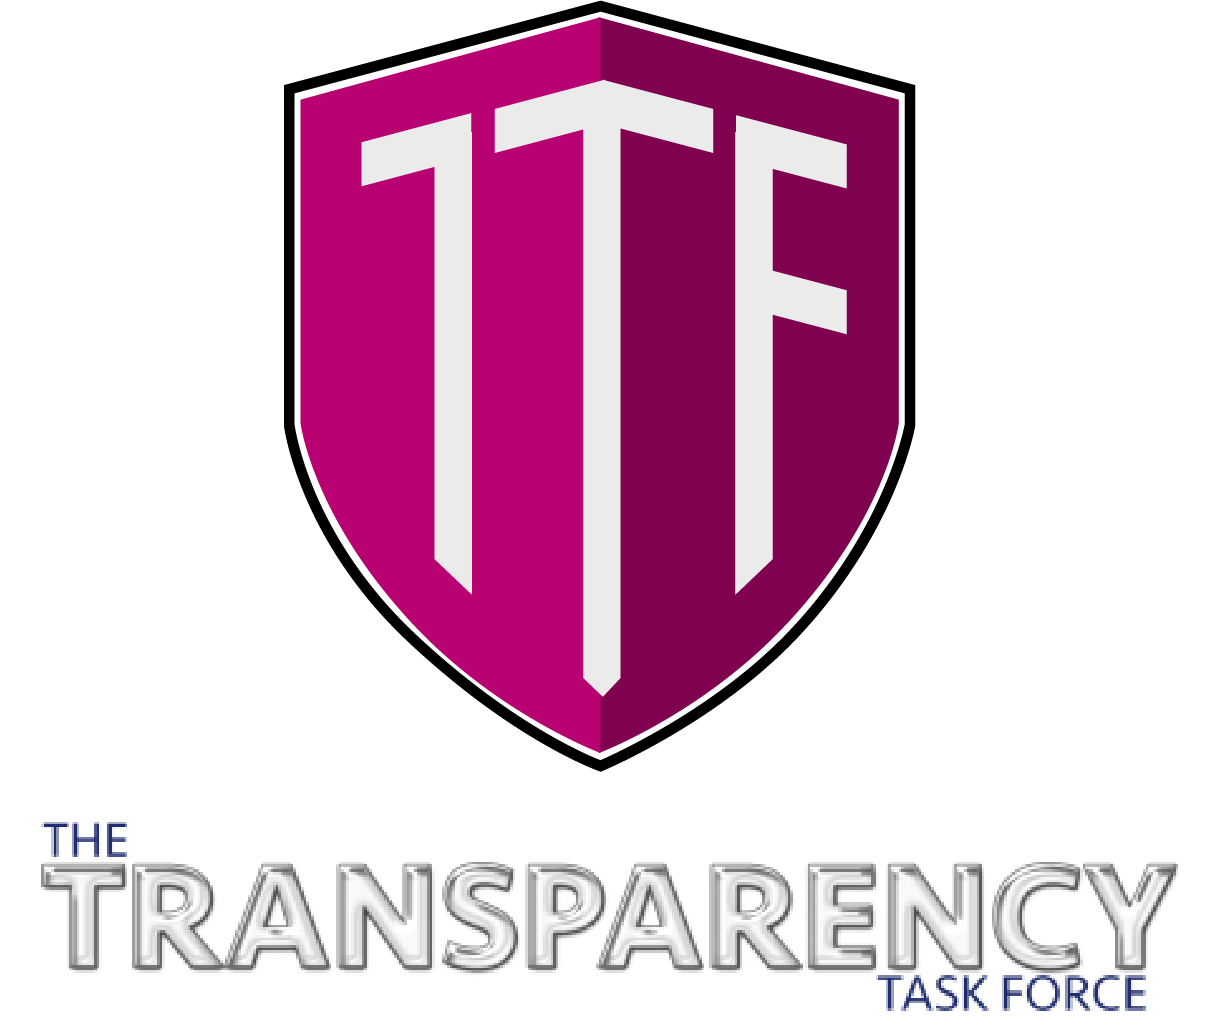 Turbocharging Transparency, Truthfulness and Trustworthiness with Technology organized by The Transparency Task Force